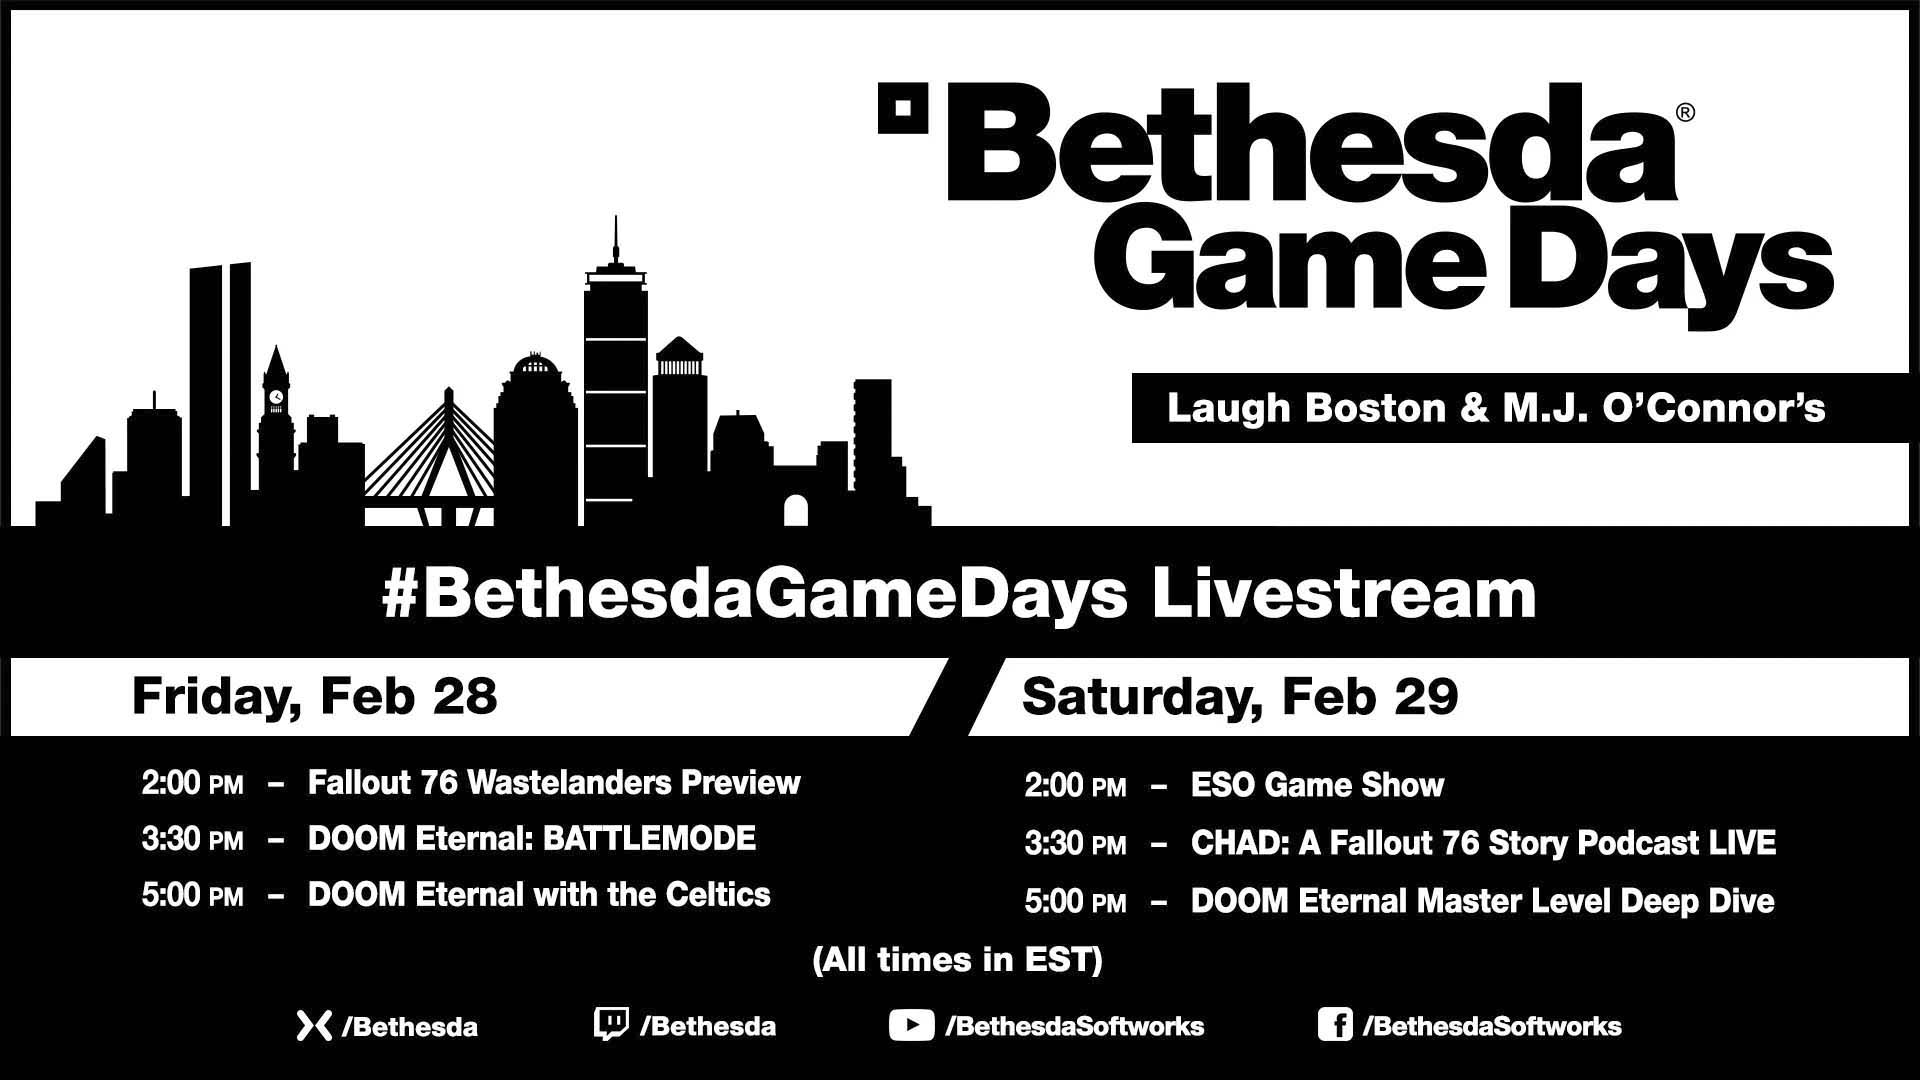 Fallout 76 Wastelanders & Doom Eternal Previews:  Bethesda Game Days in Boston February, 2020